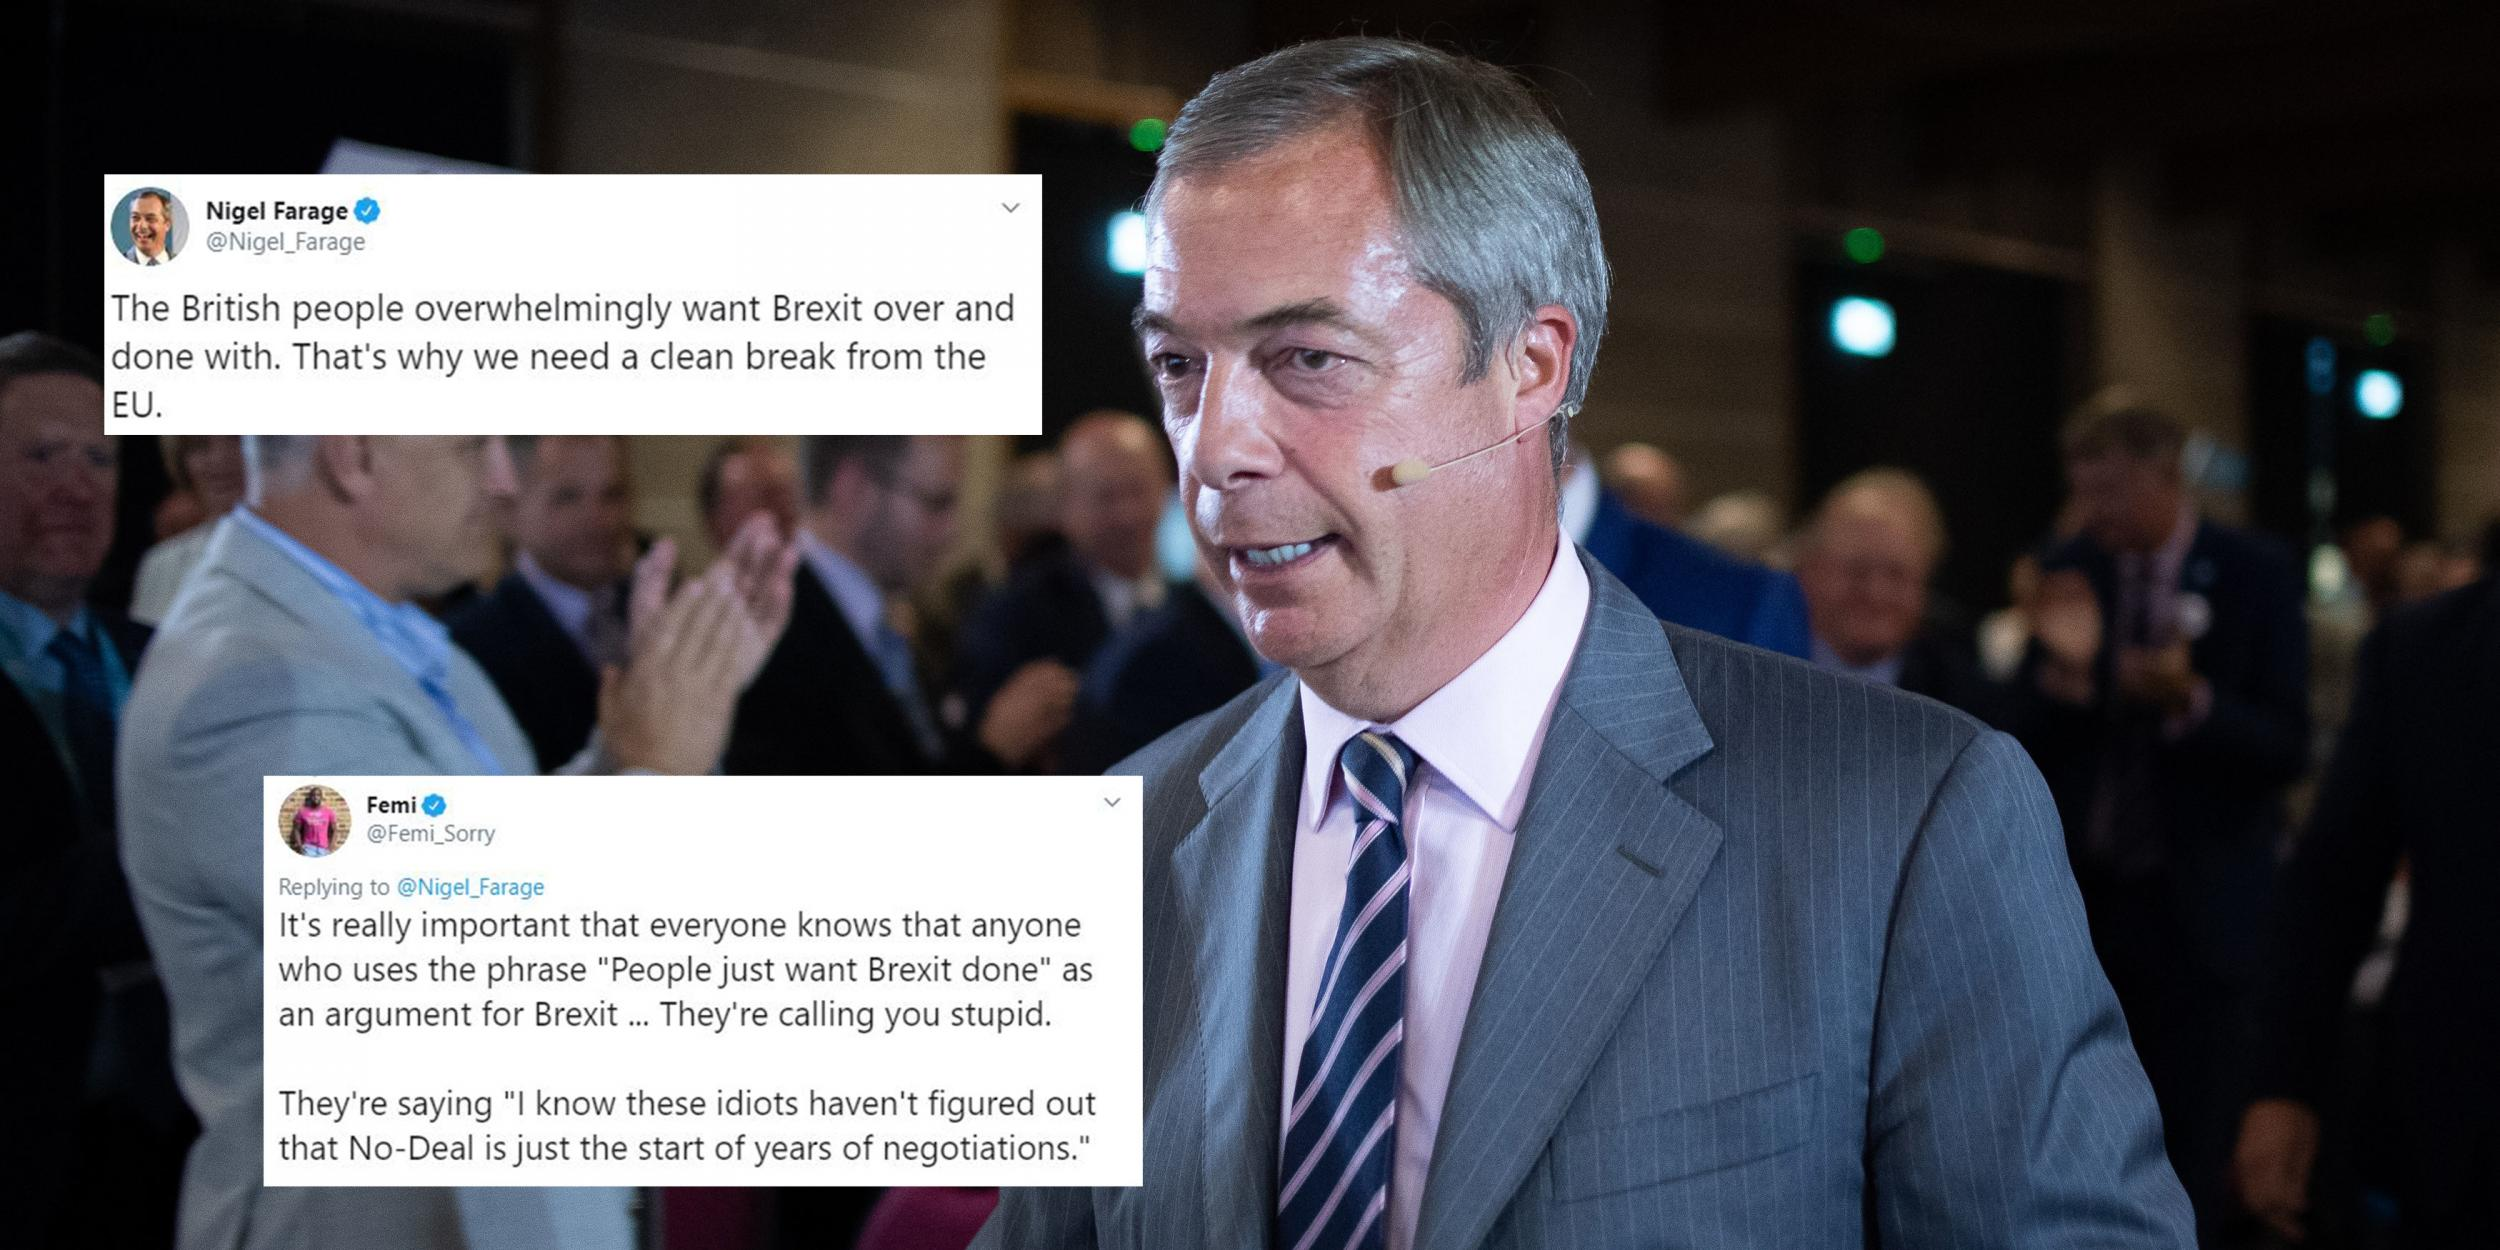 Nigel Farage said that people want a clean Brexit break but there is a huge problem